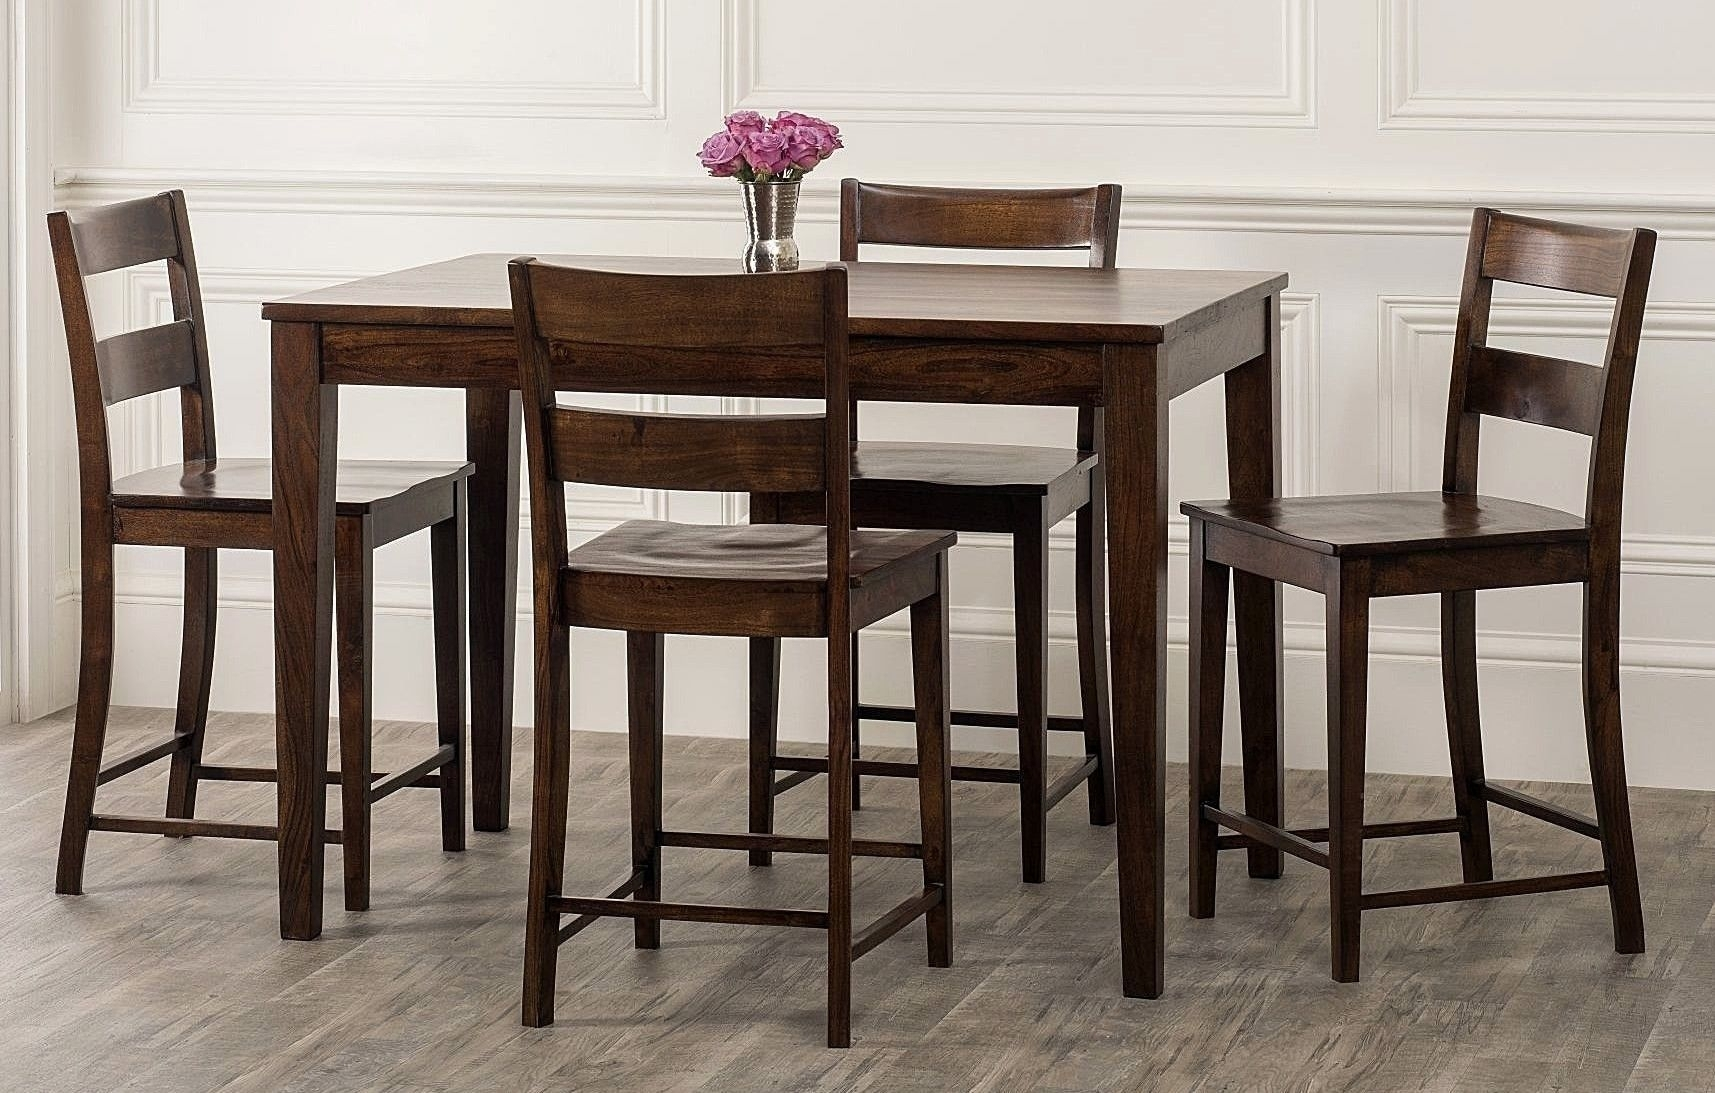 Kristopher 5 Piece Counter Height Dining Set | Products | Pinterest Inside Most Recently Released Hyland 5 Piece Counter Sets With Bench (View 18 of 20)